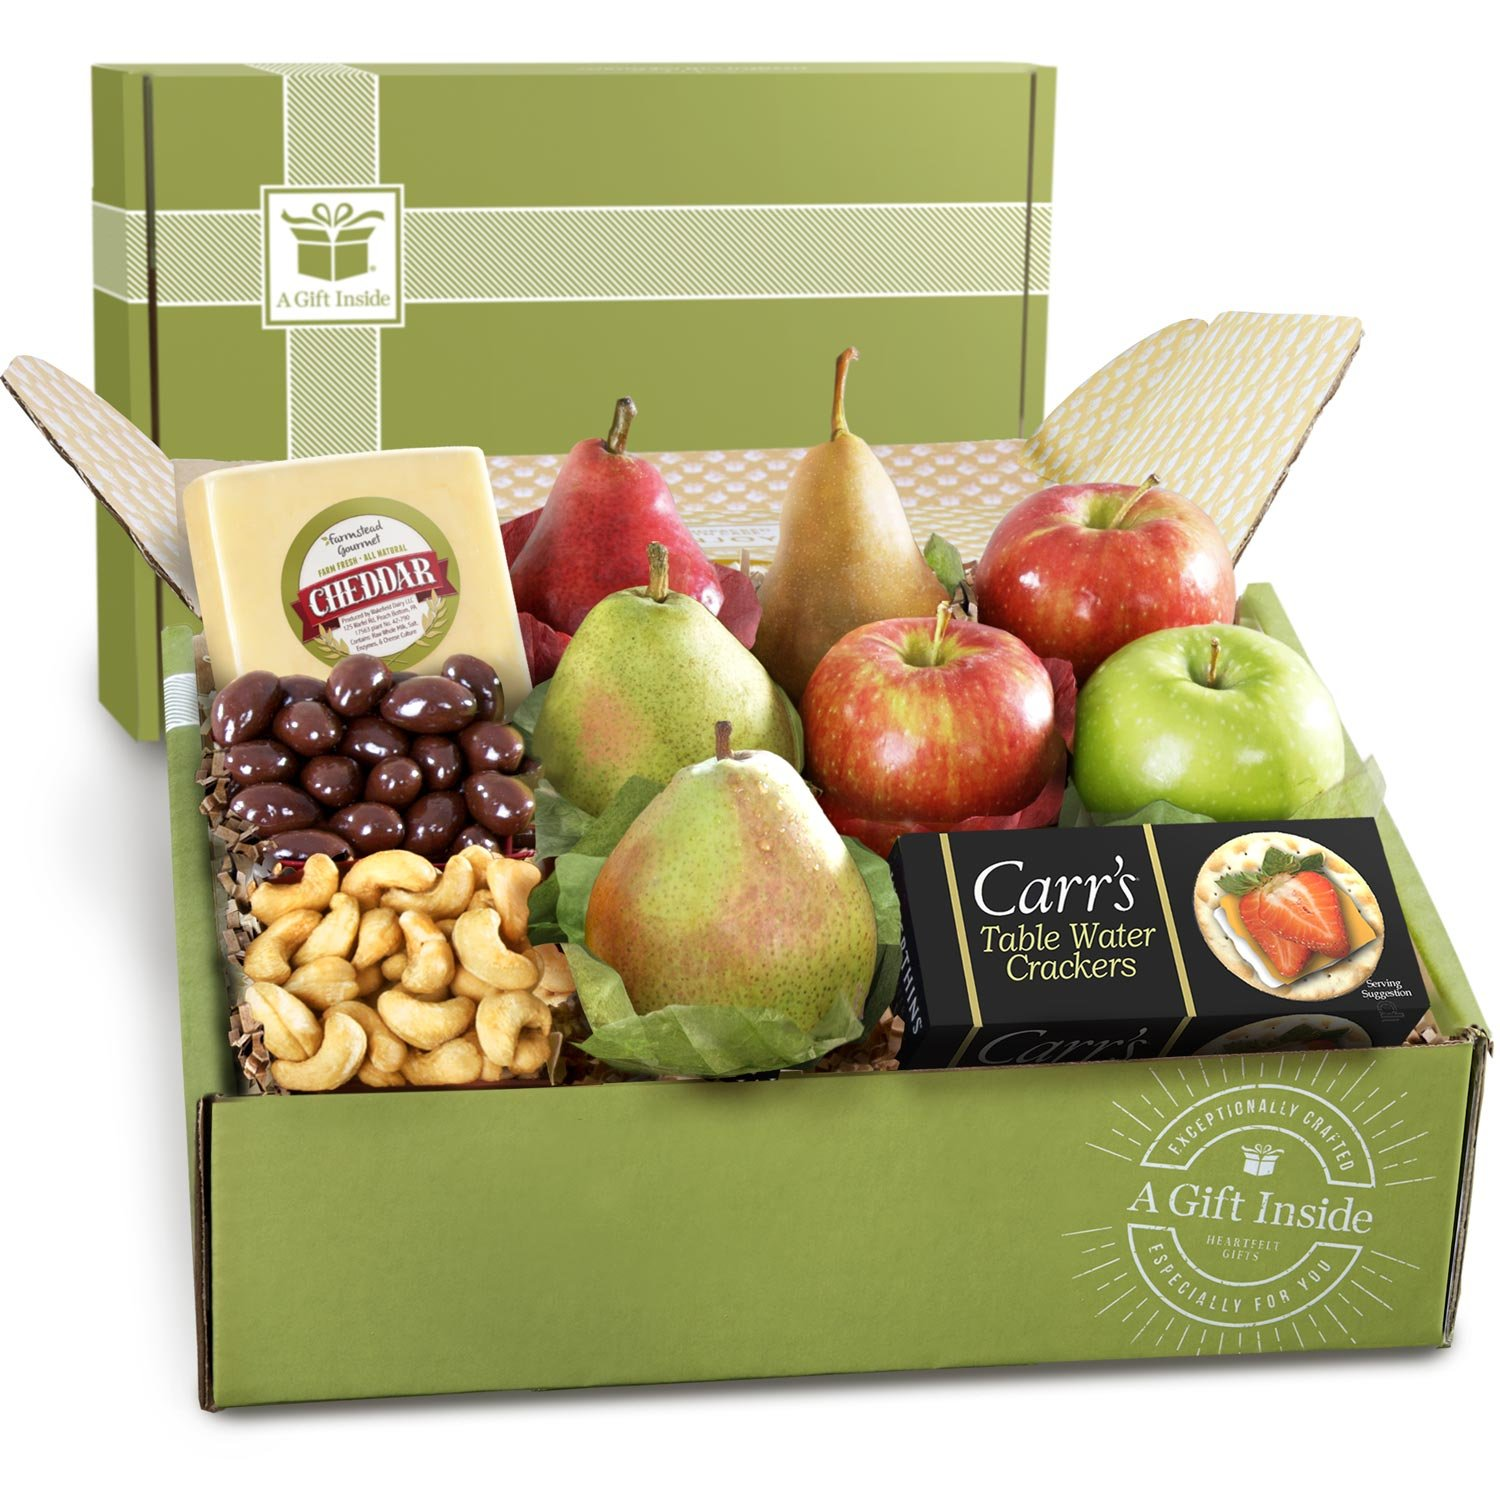 Grande Petaluma Cheese and Fruit Gift Box by Golden State Fruit (Image #1)